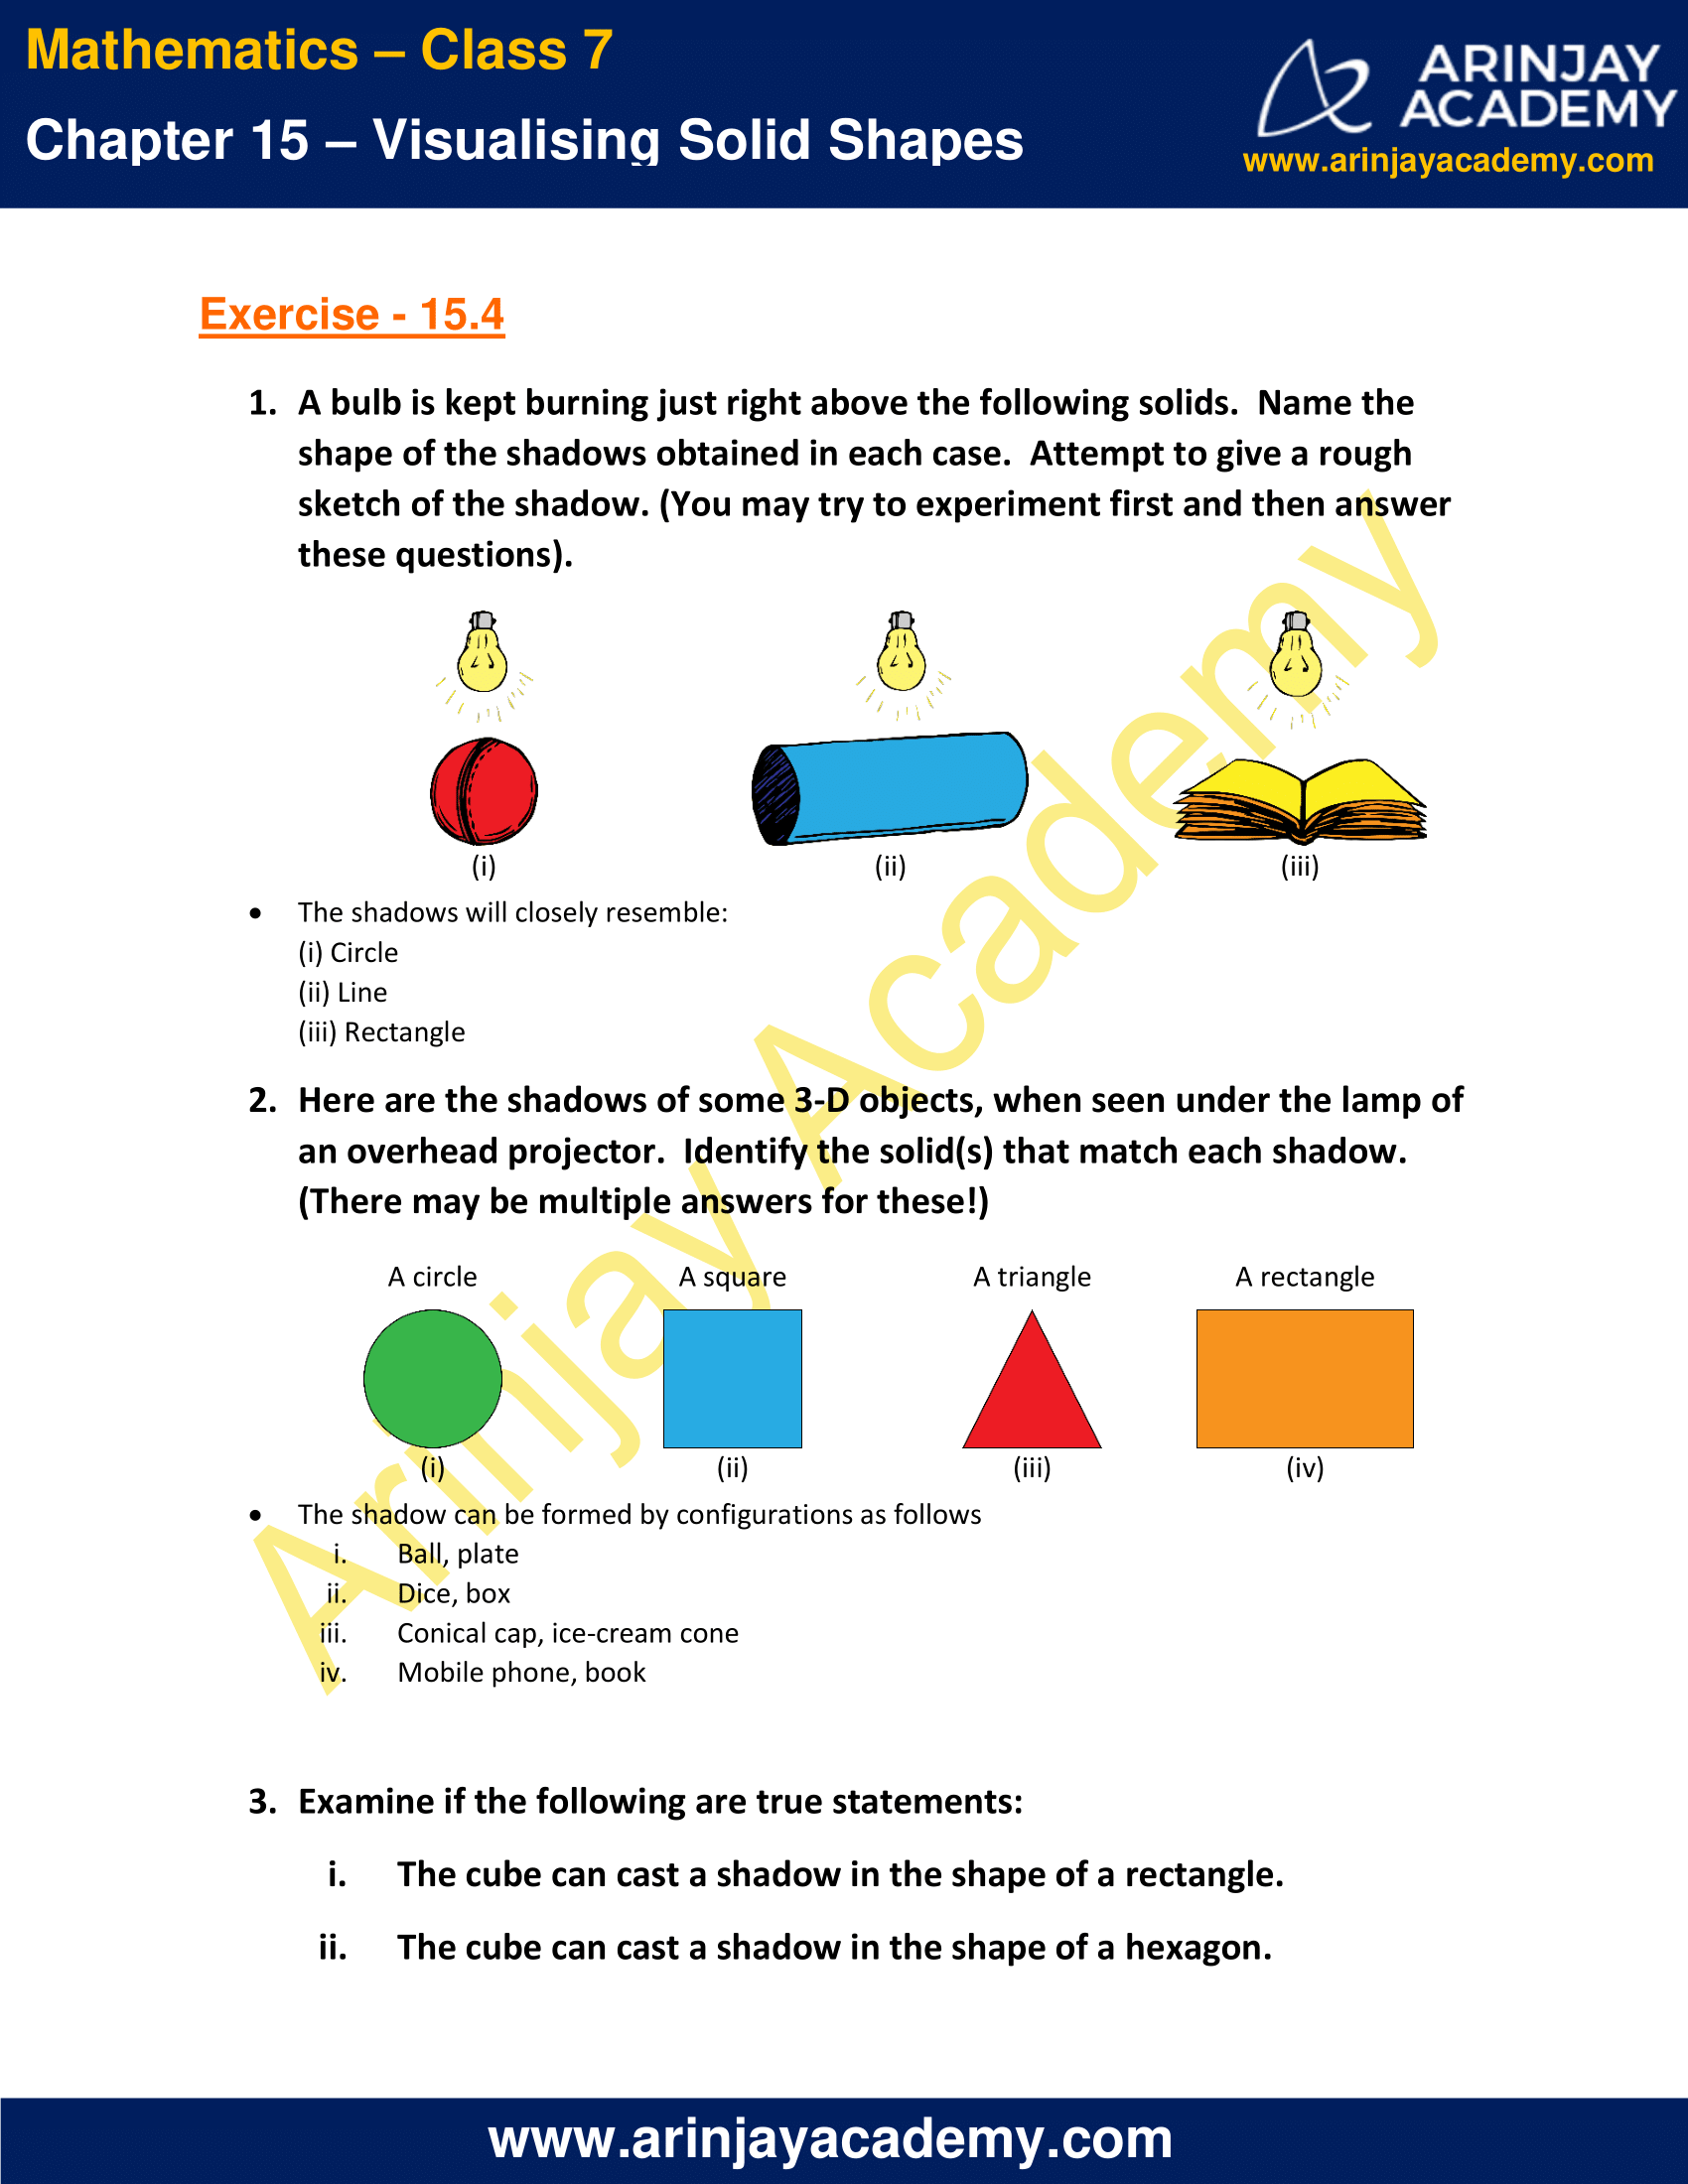 NCERT Solutions for Class 7 Maths Chapter 15 Exercise 15.4 image 1